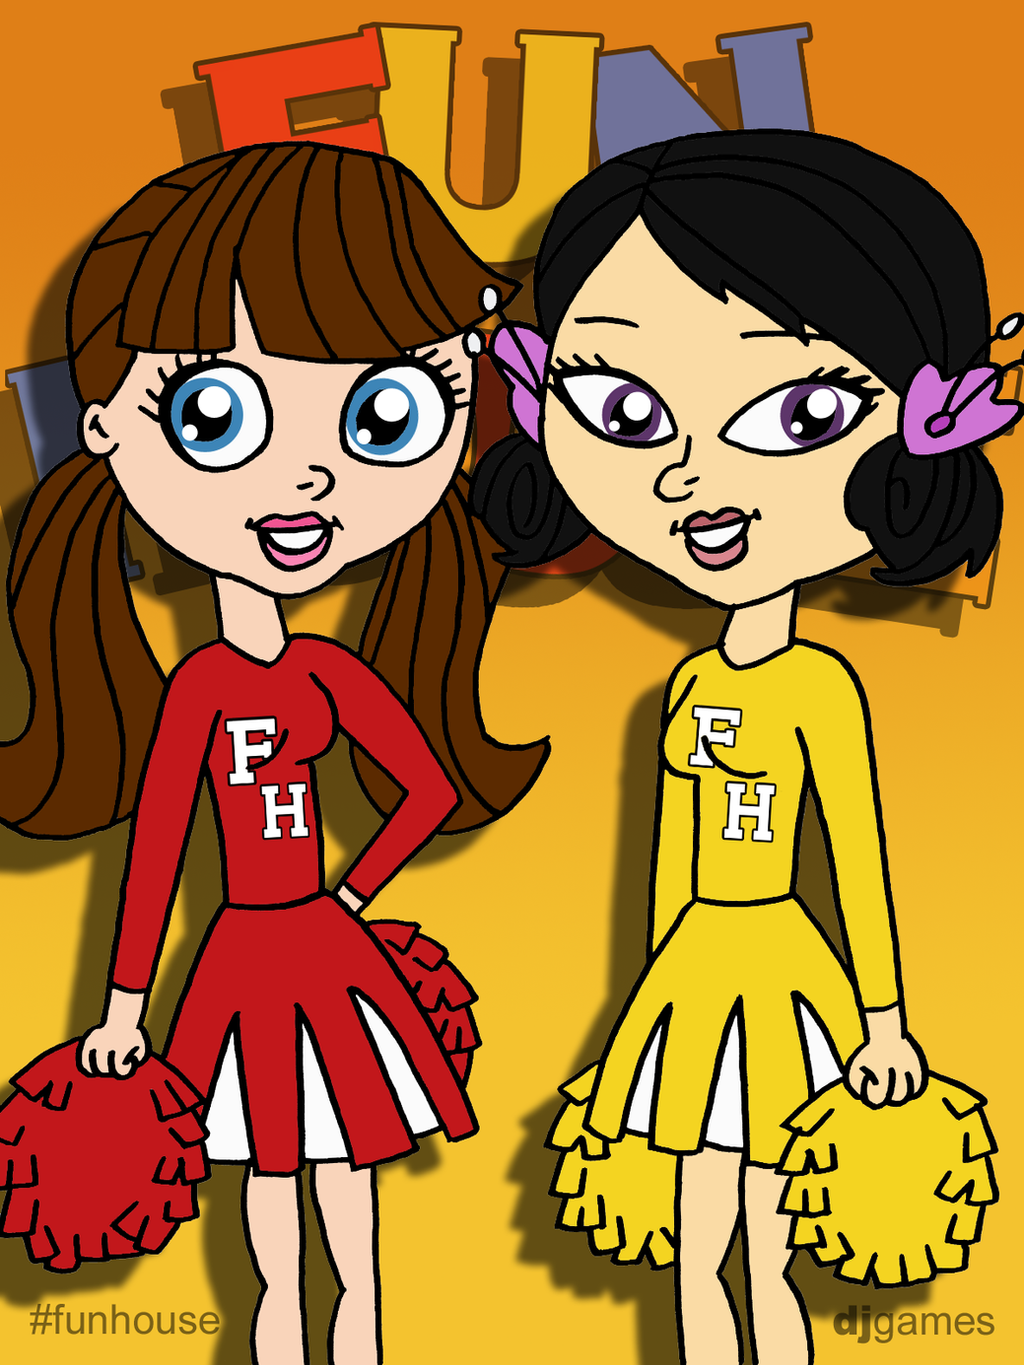 Blythe and youngmee fun house cheerleaders by djgames on - Djgames deviantart ...